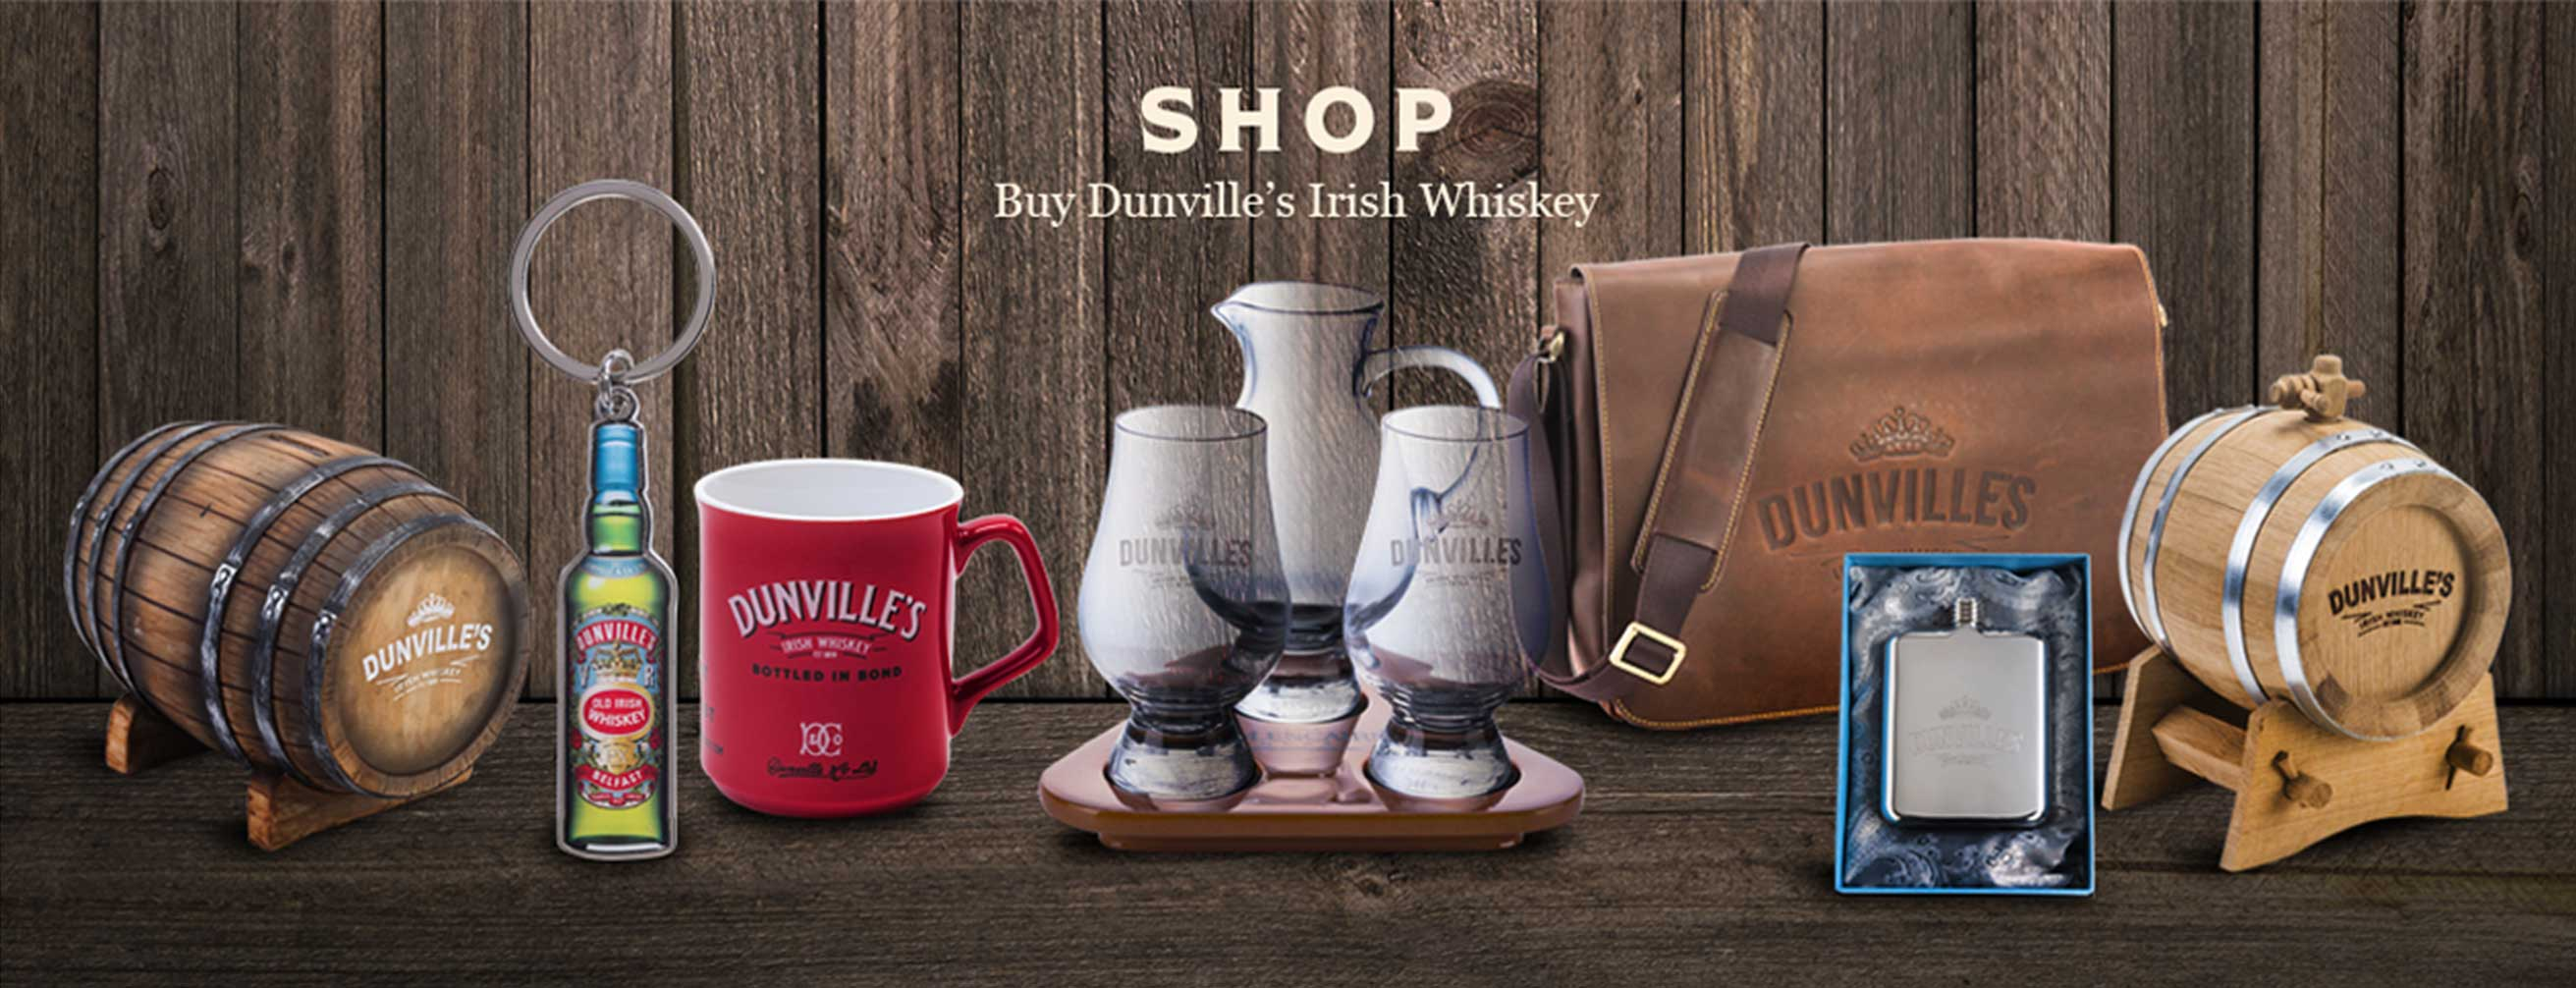 Dunville's Whiskey Shop